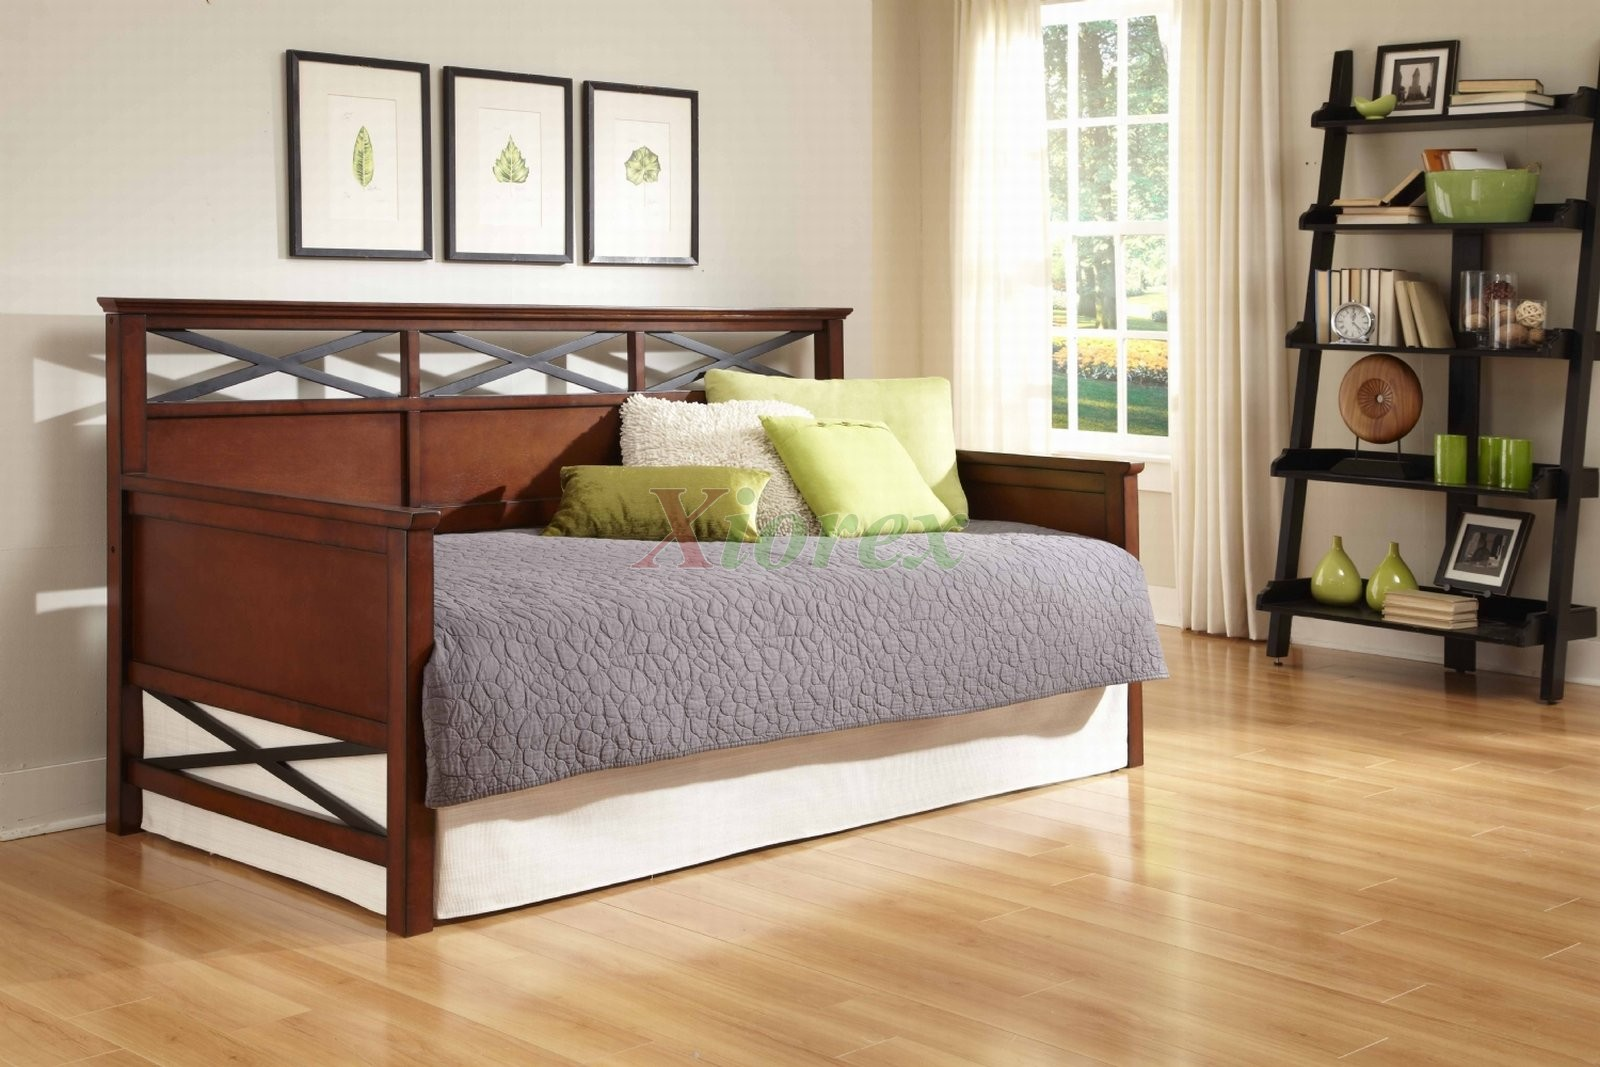 Lexington Daybed Metal And Wooden Daybed By Fbg Xiorex